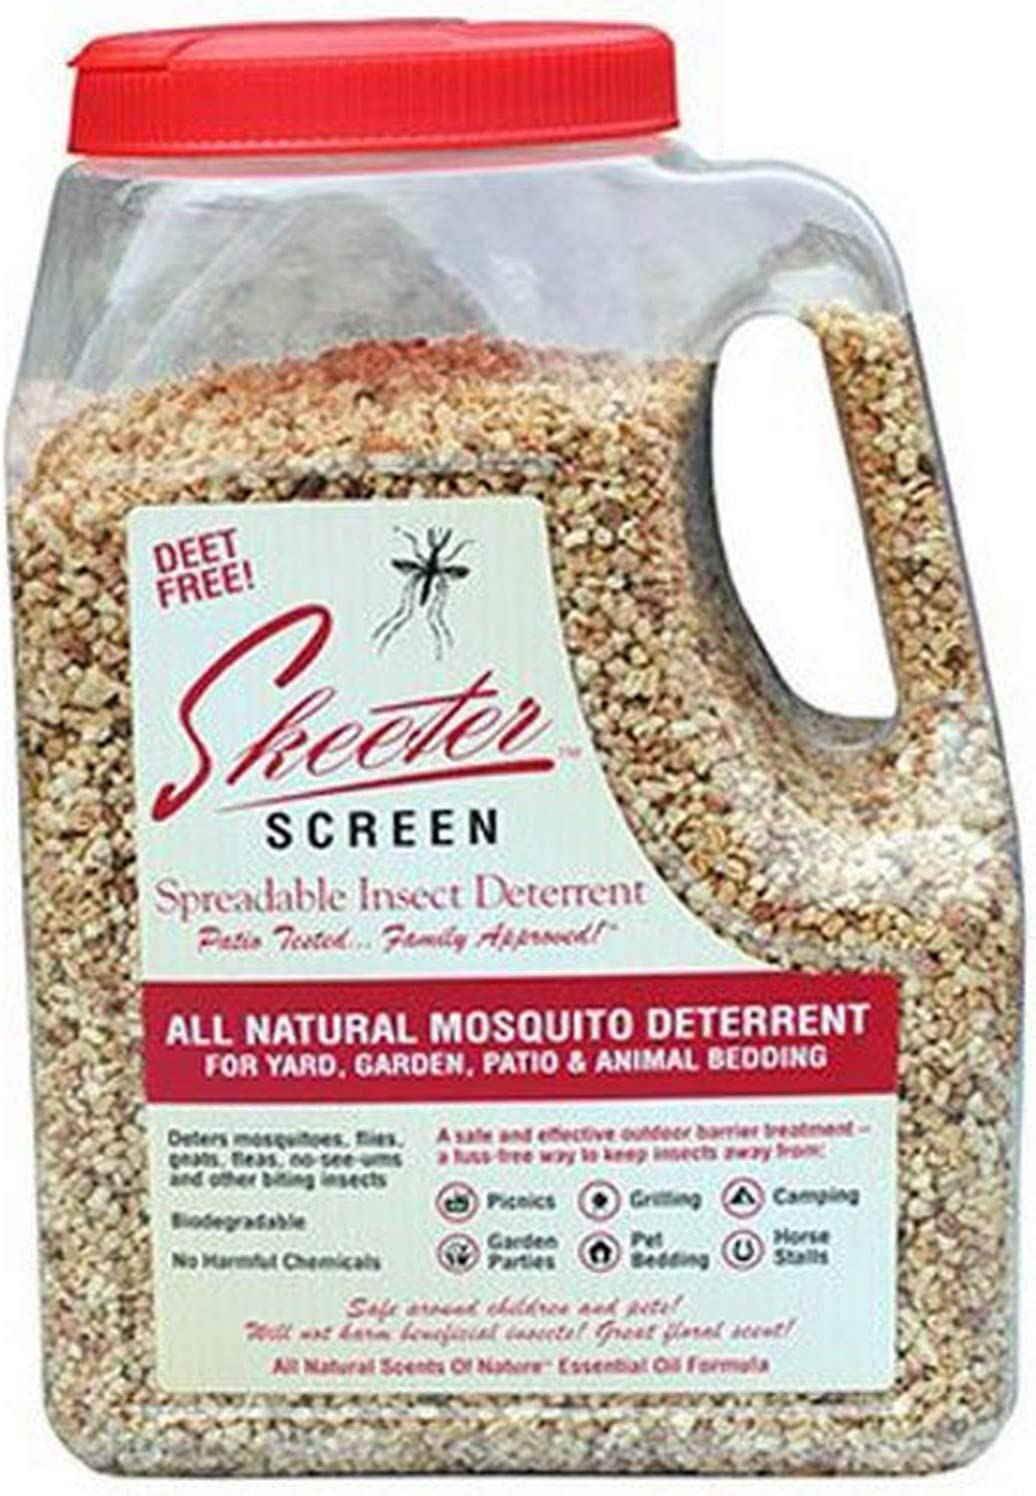 Skeeter Screen 90800 Spreadable Insect Deterrent, 4-Pound